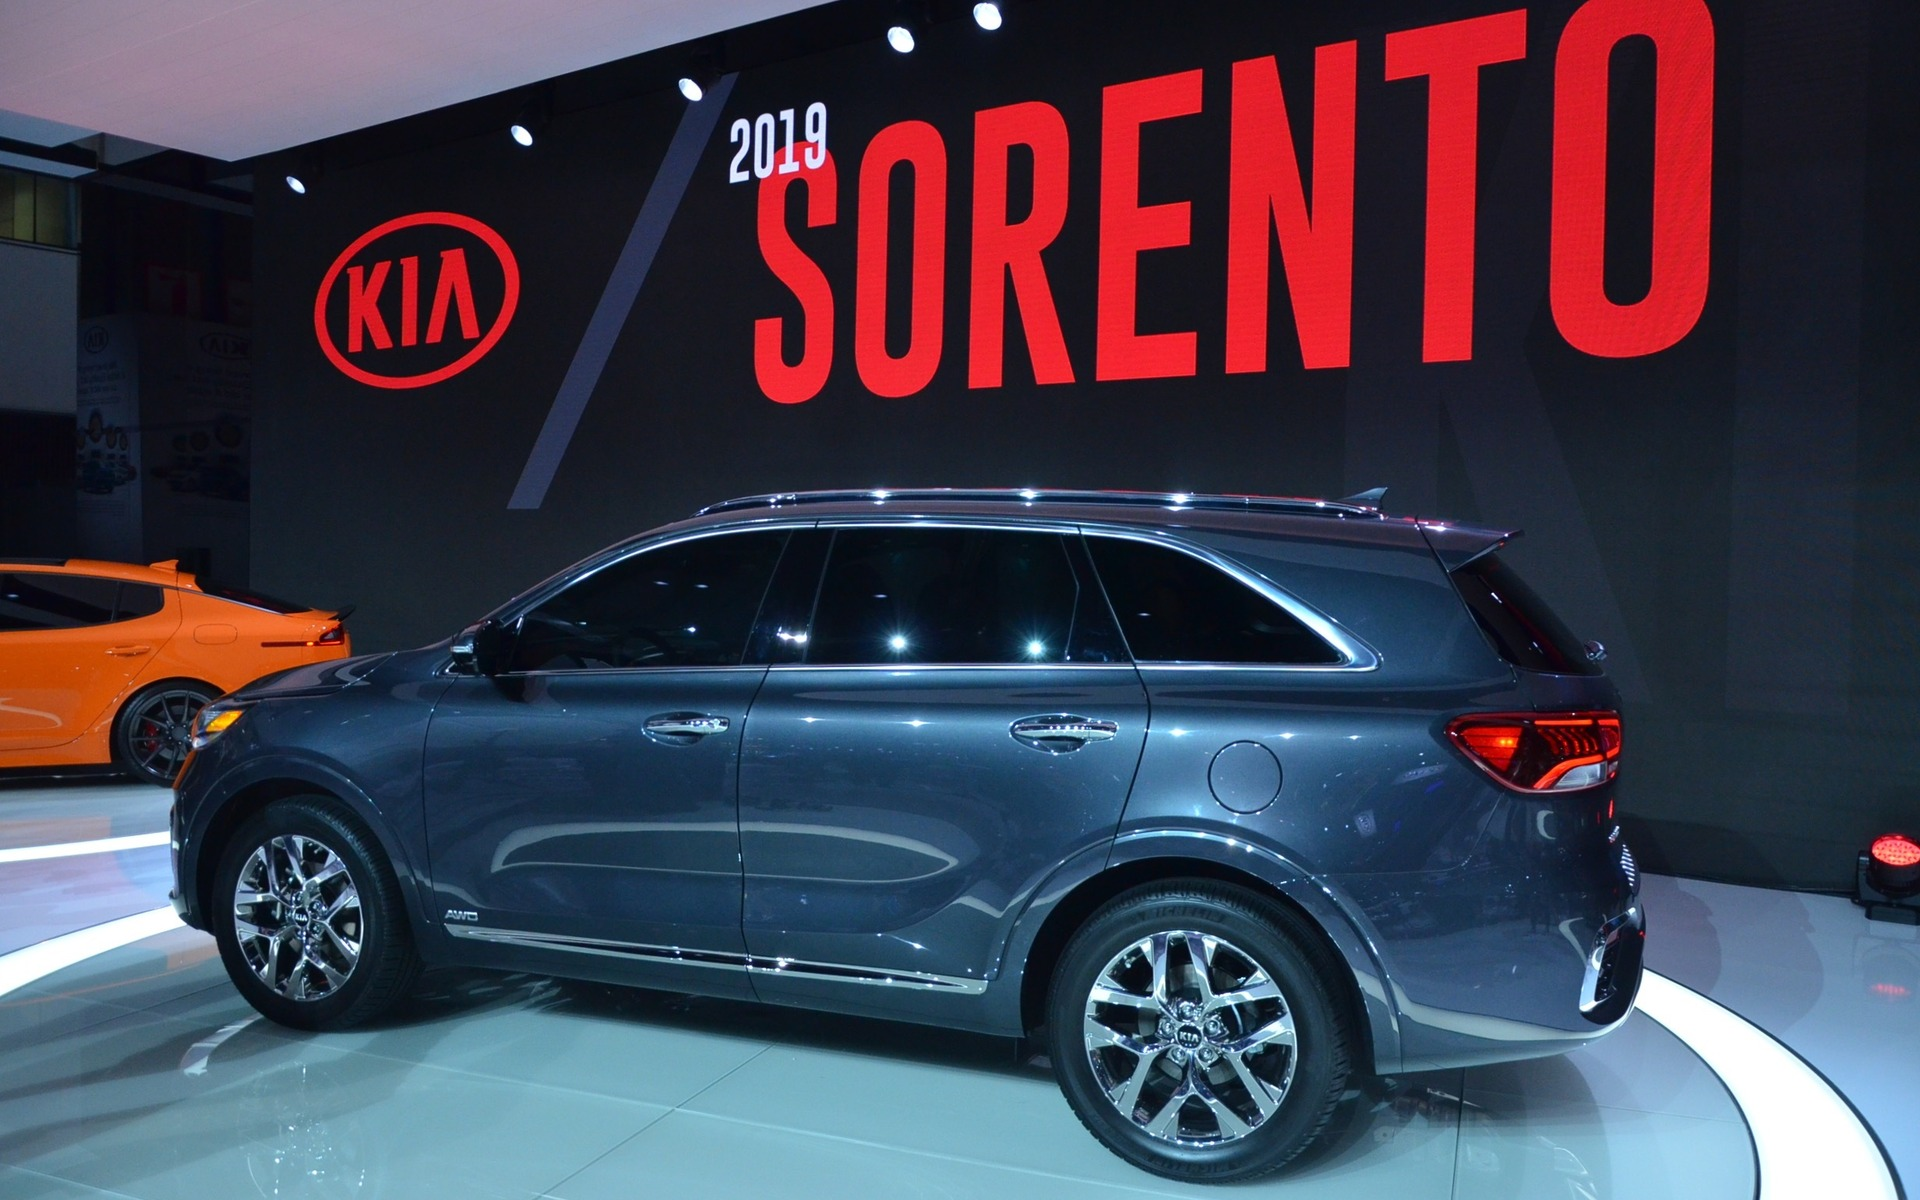 2019 Kia Sorento A Facelift A Revised Cockpit And A Diesel Engine